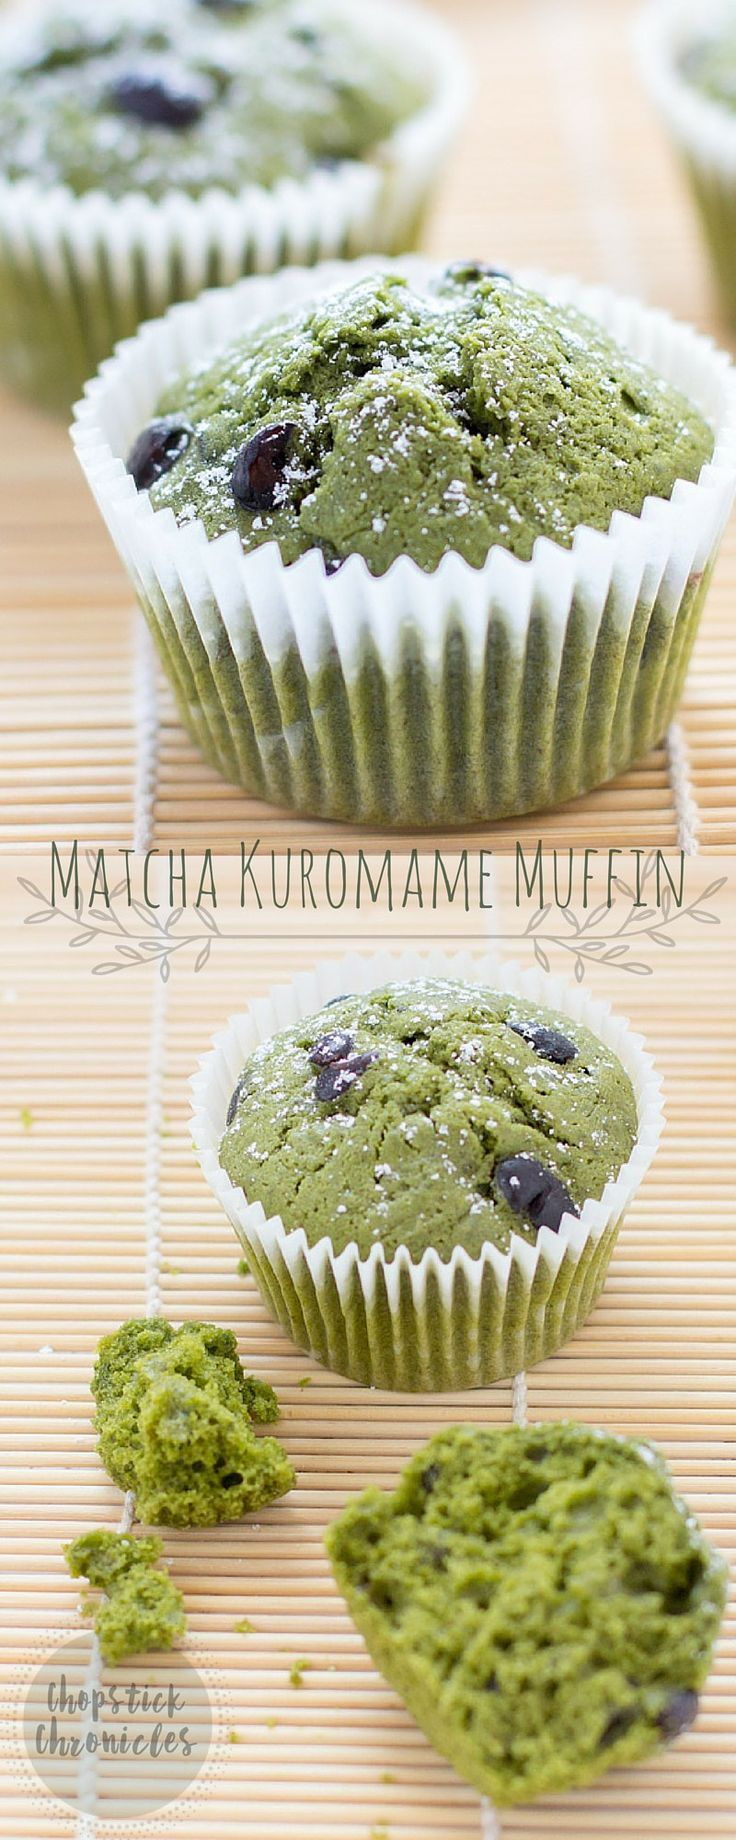 Photo of Matcha Green Tea Muffins with Kuromame | Chopstick Chronicles